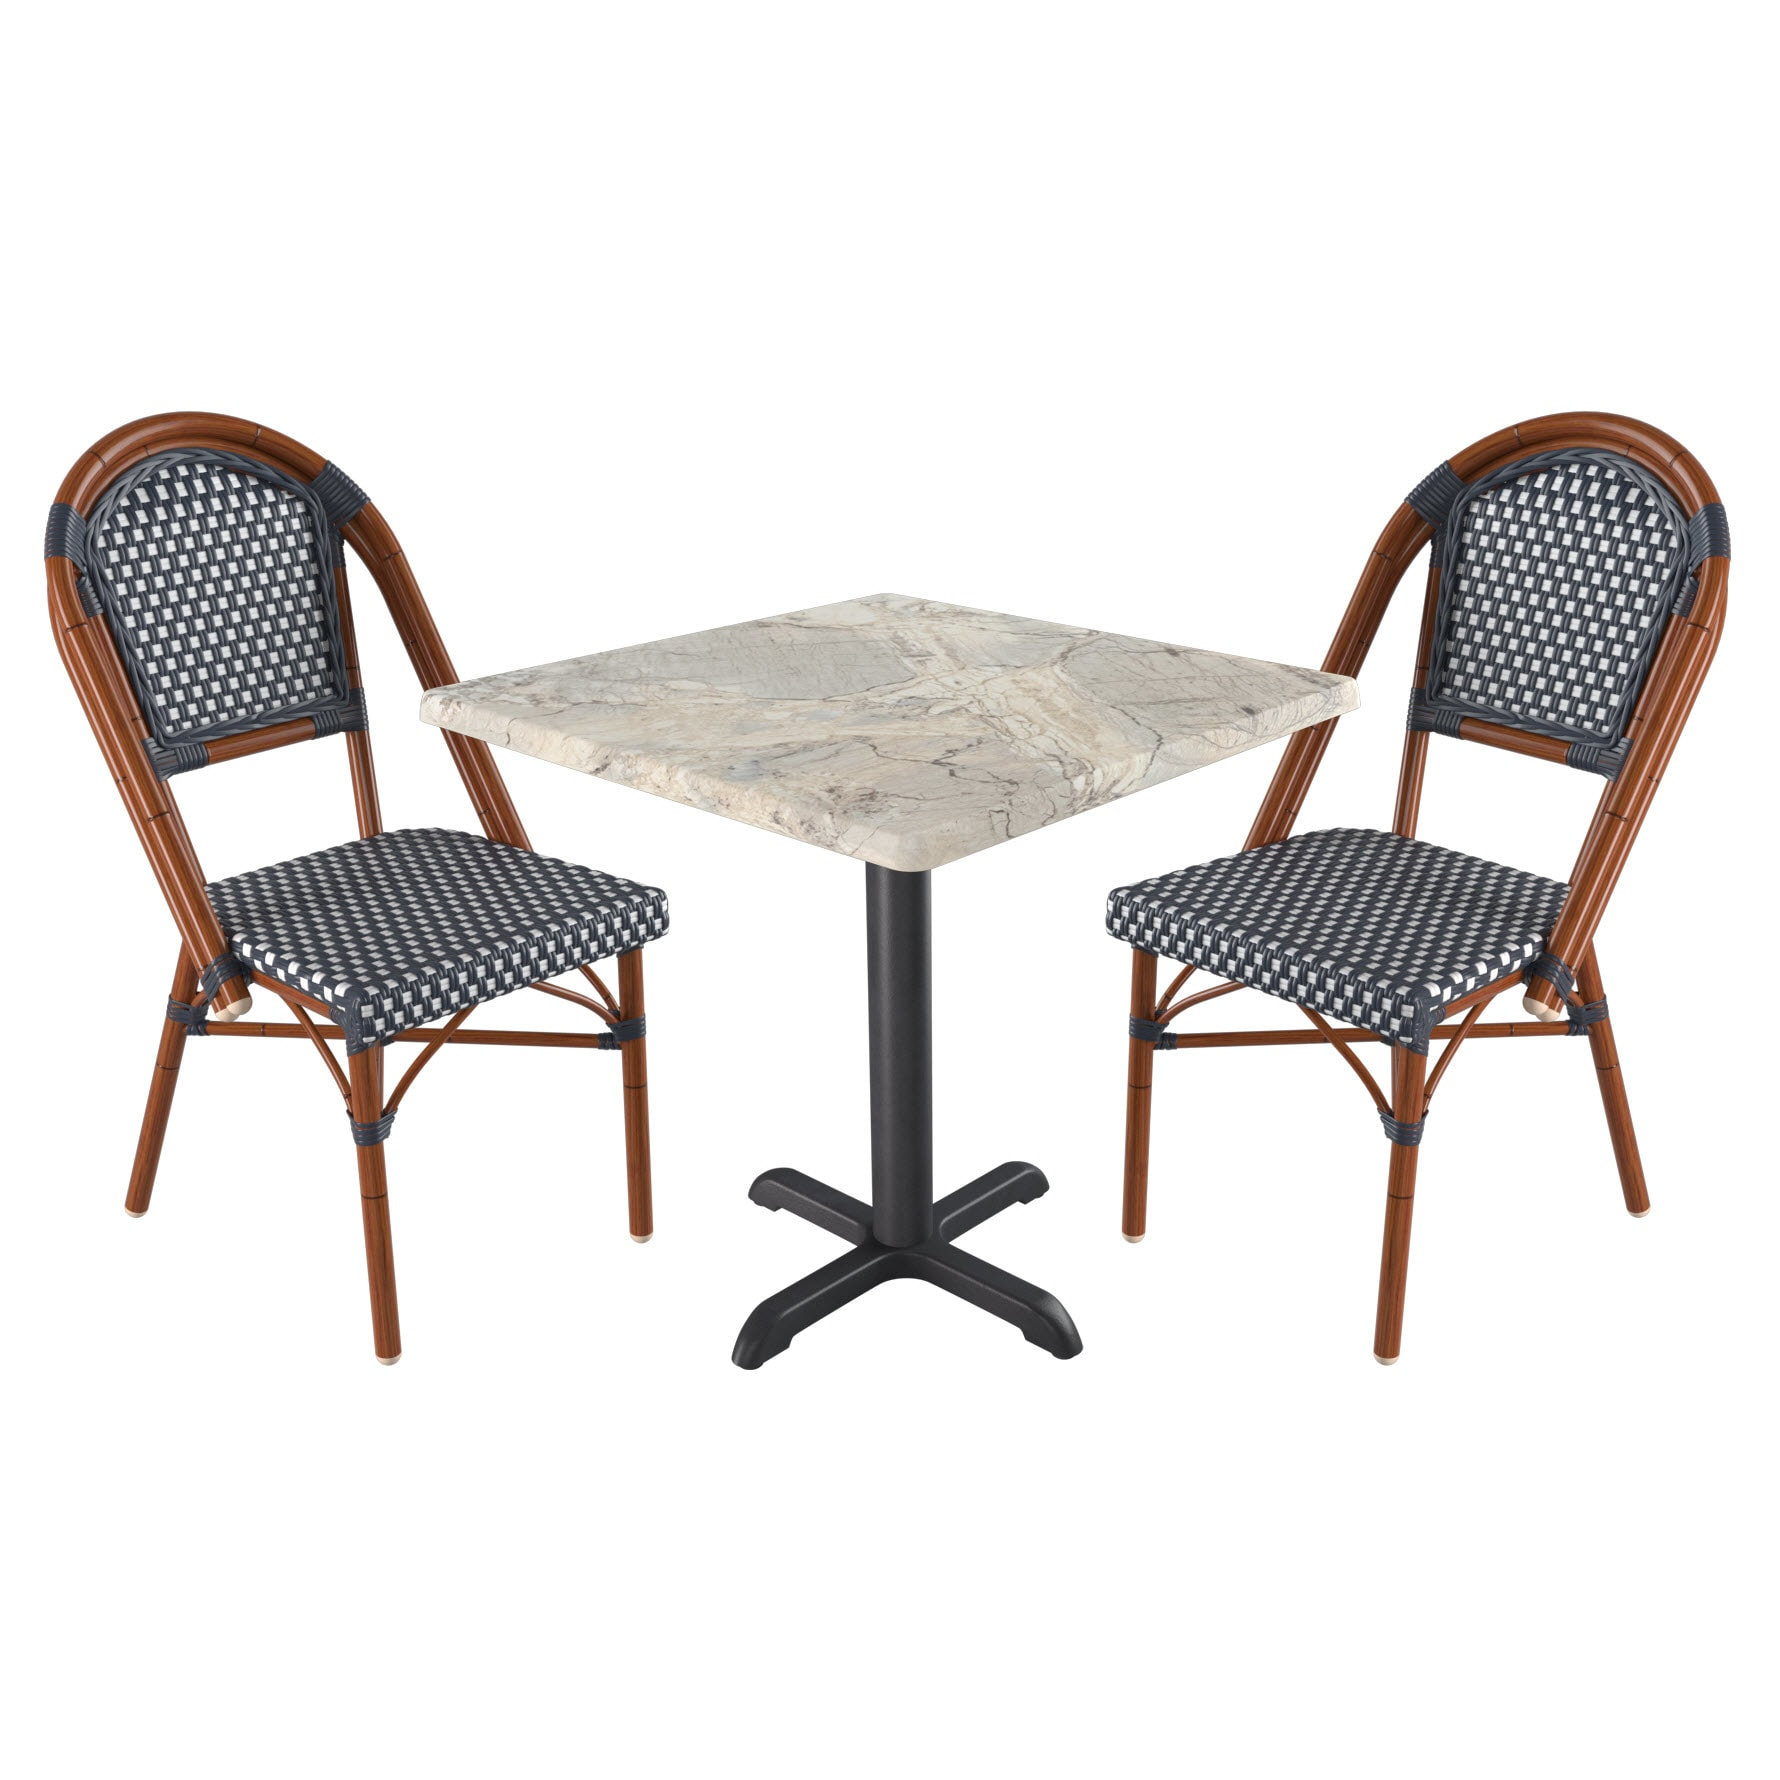 Paris Style Set with 2 Chairs